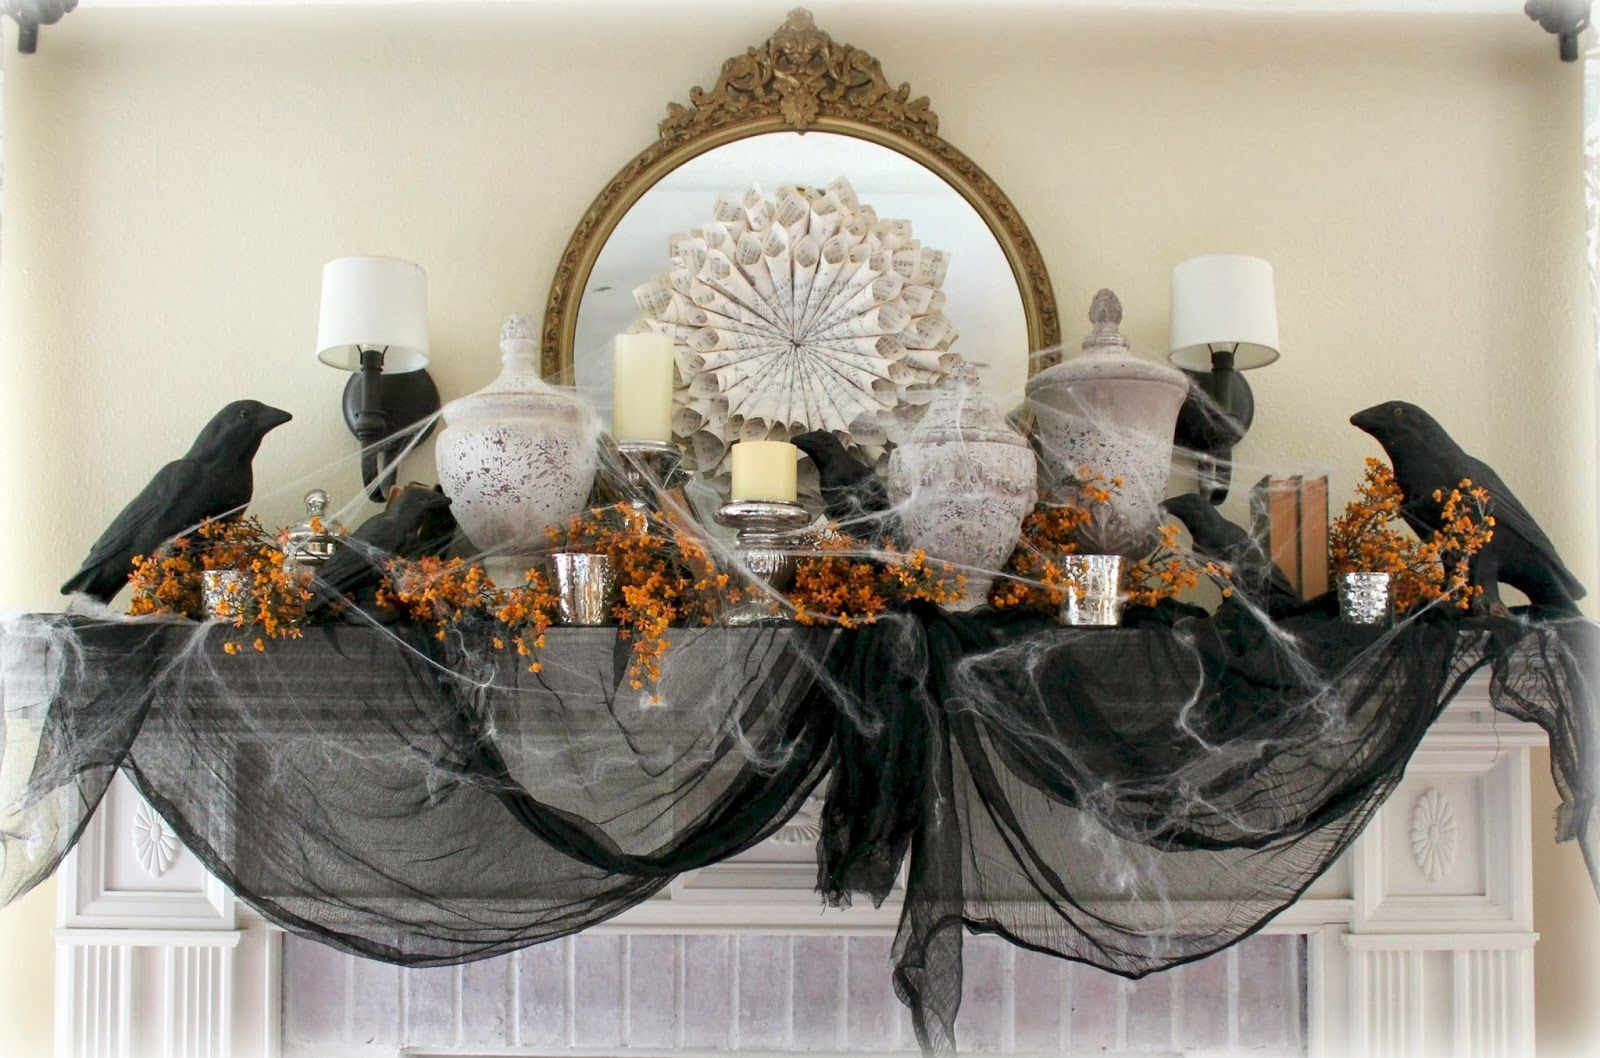 56 Fun and Festive Halloween Party Decoration Ideas   Fireplace ...